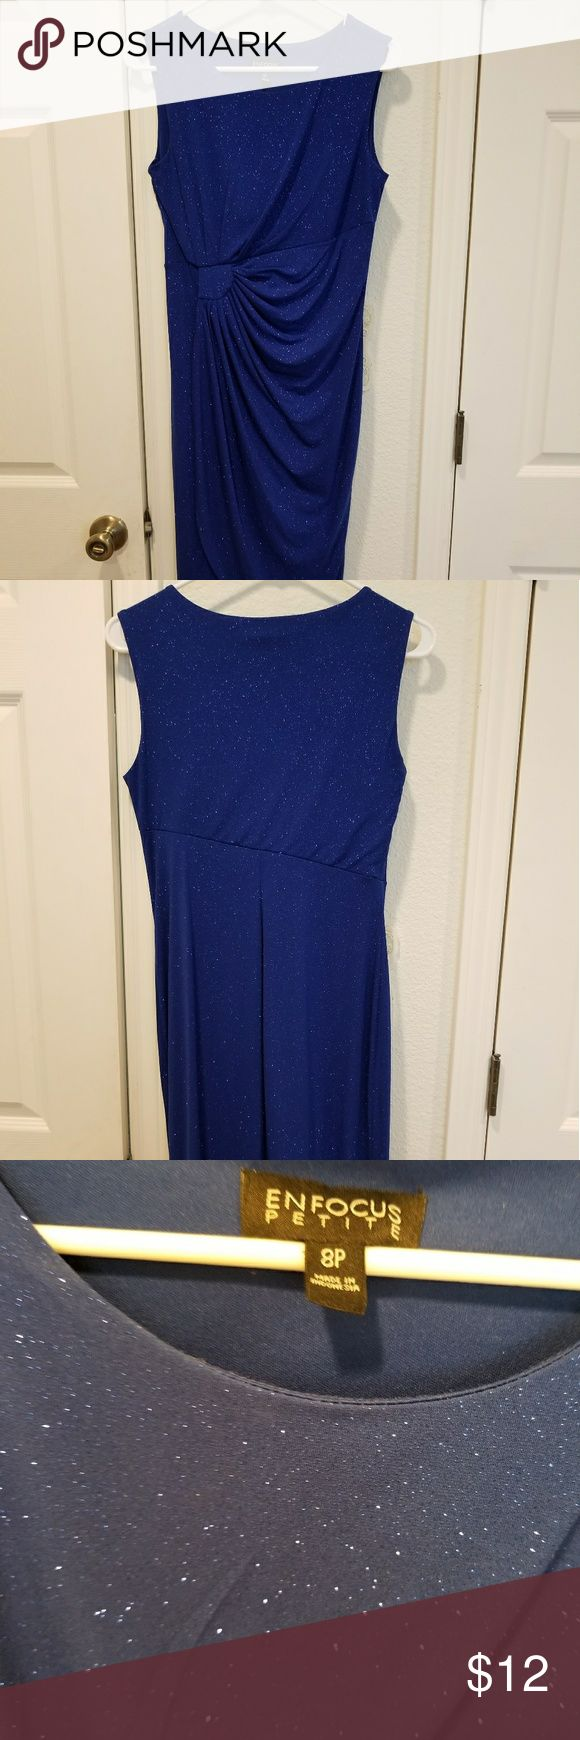 Beautiful  blue, sparkly cocktail dress This sleeveless dress compliments your figure beautifully. Gathers on the side gives a slimming effect you'll love. Worn one time while on a cruise. Perfect condition. Enfocus Petite Dresses Midi